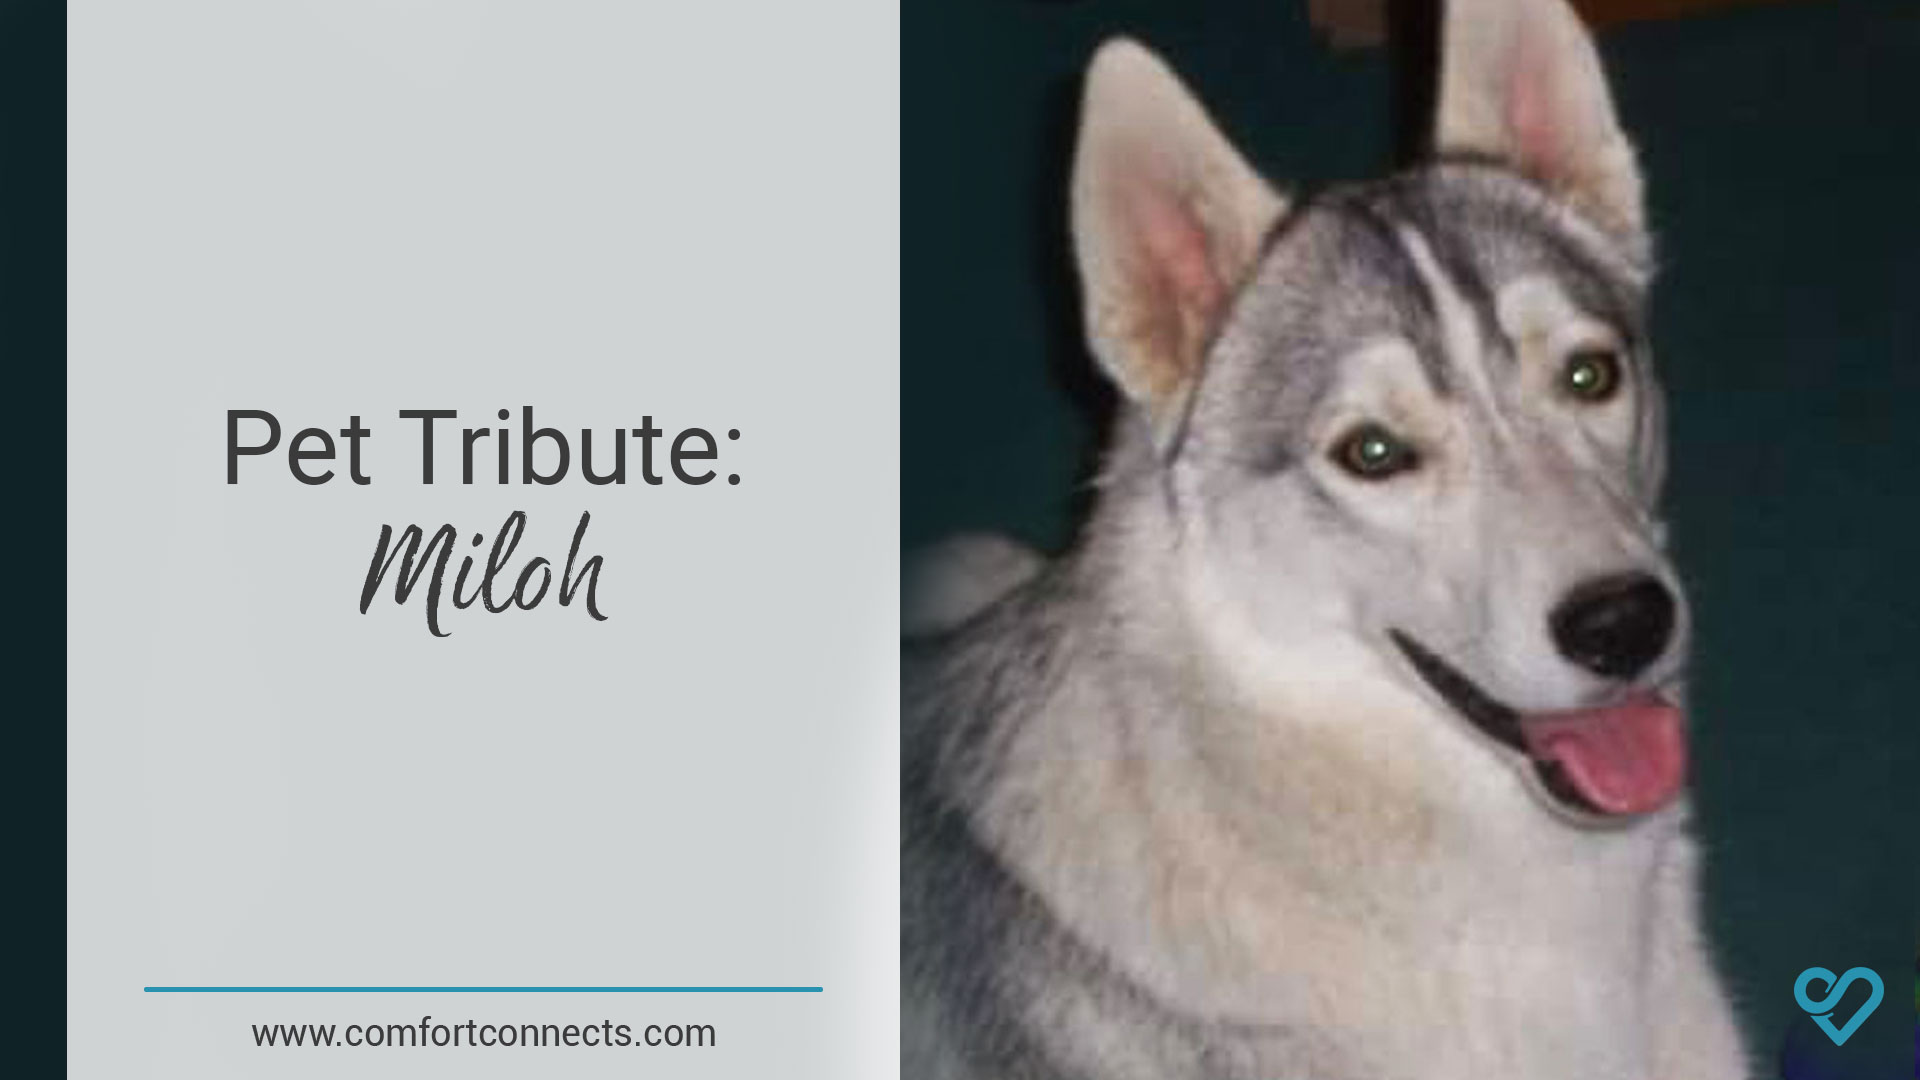 Pet Tribute: Miloh